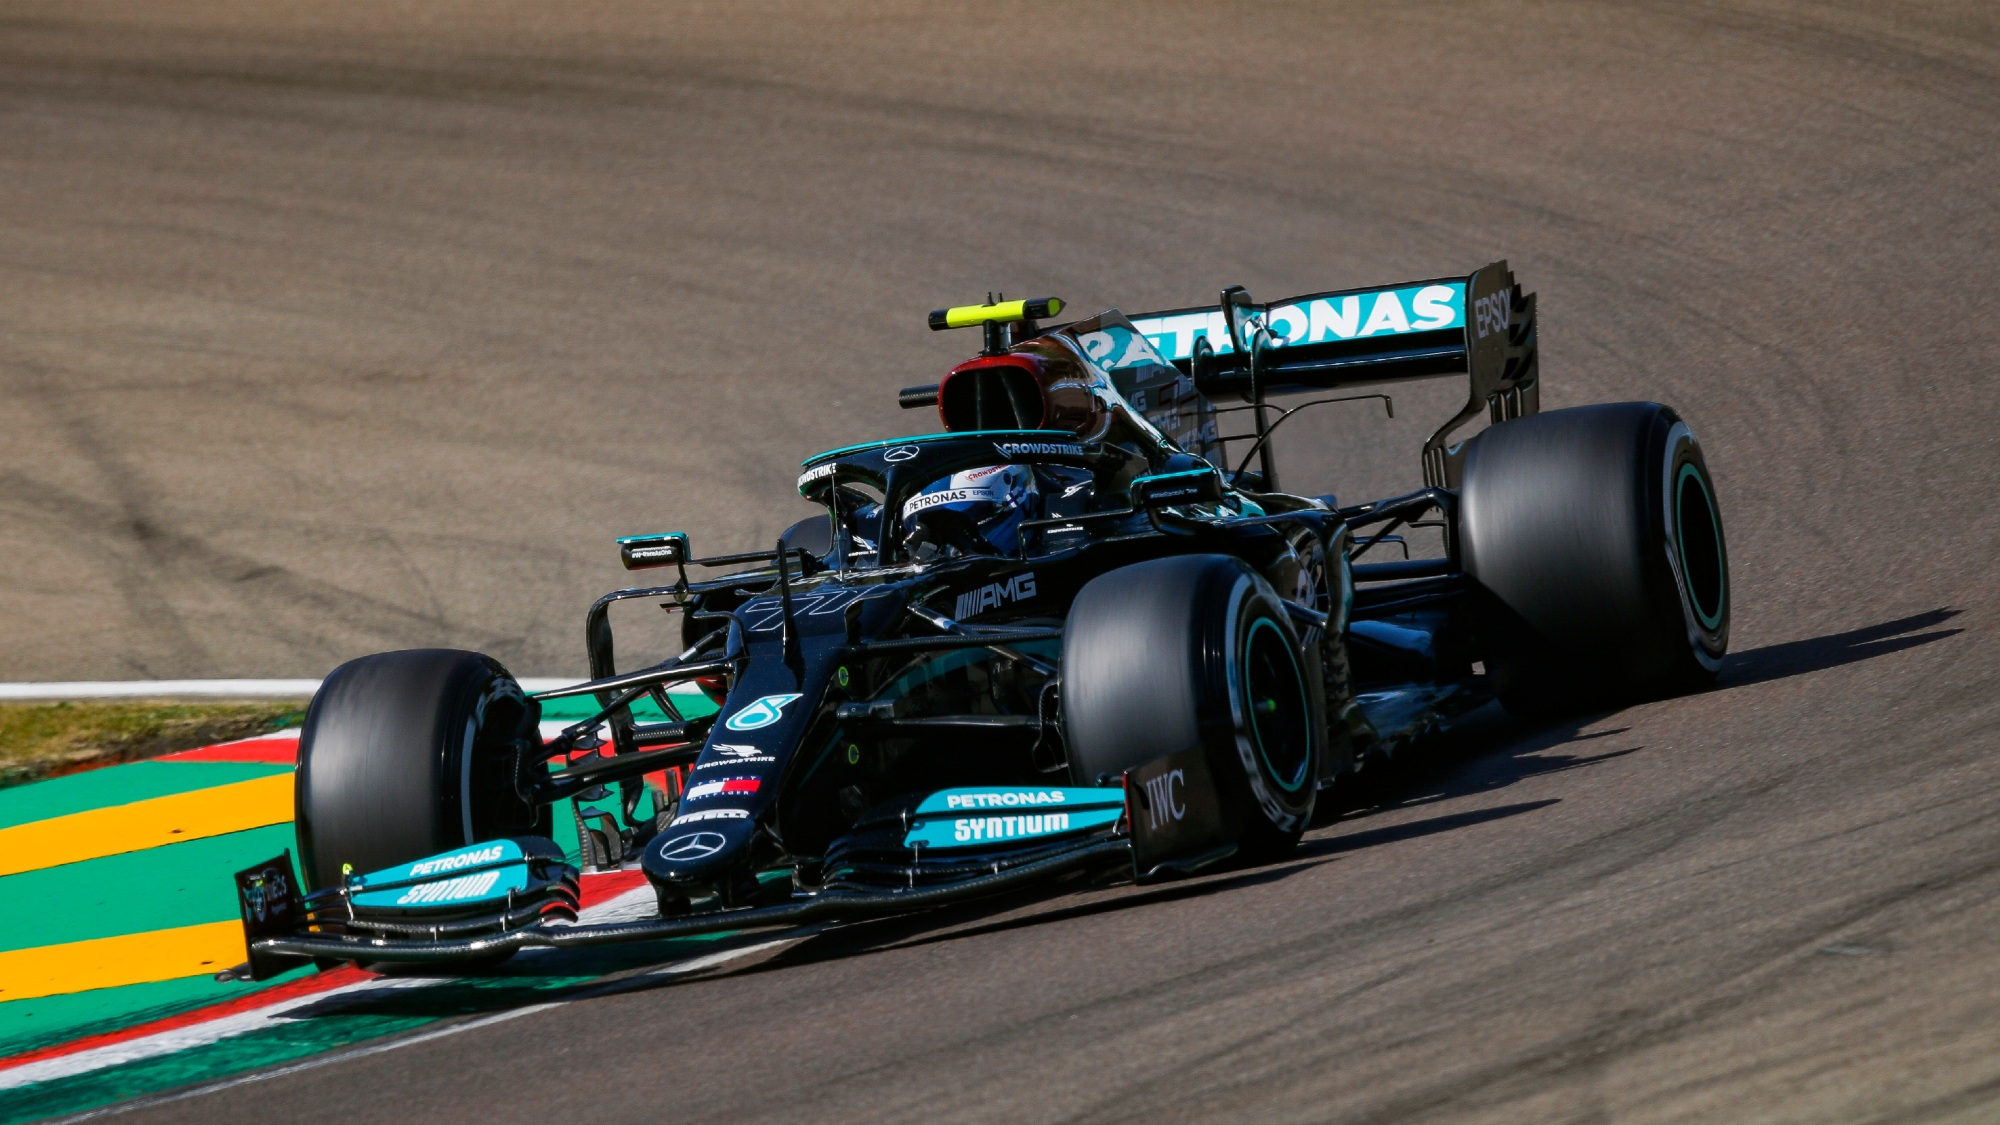 2021 Emilia Romagna Grand Prix practice round-up: Bottas fastest on Friday as Leclerc and Verstappen hit trouble